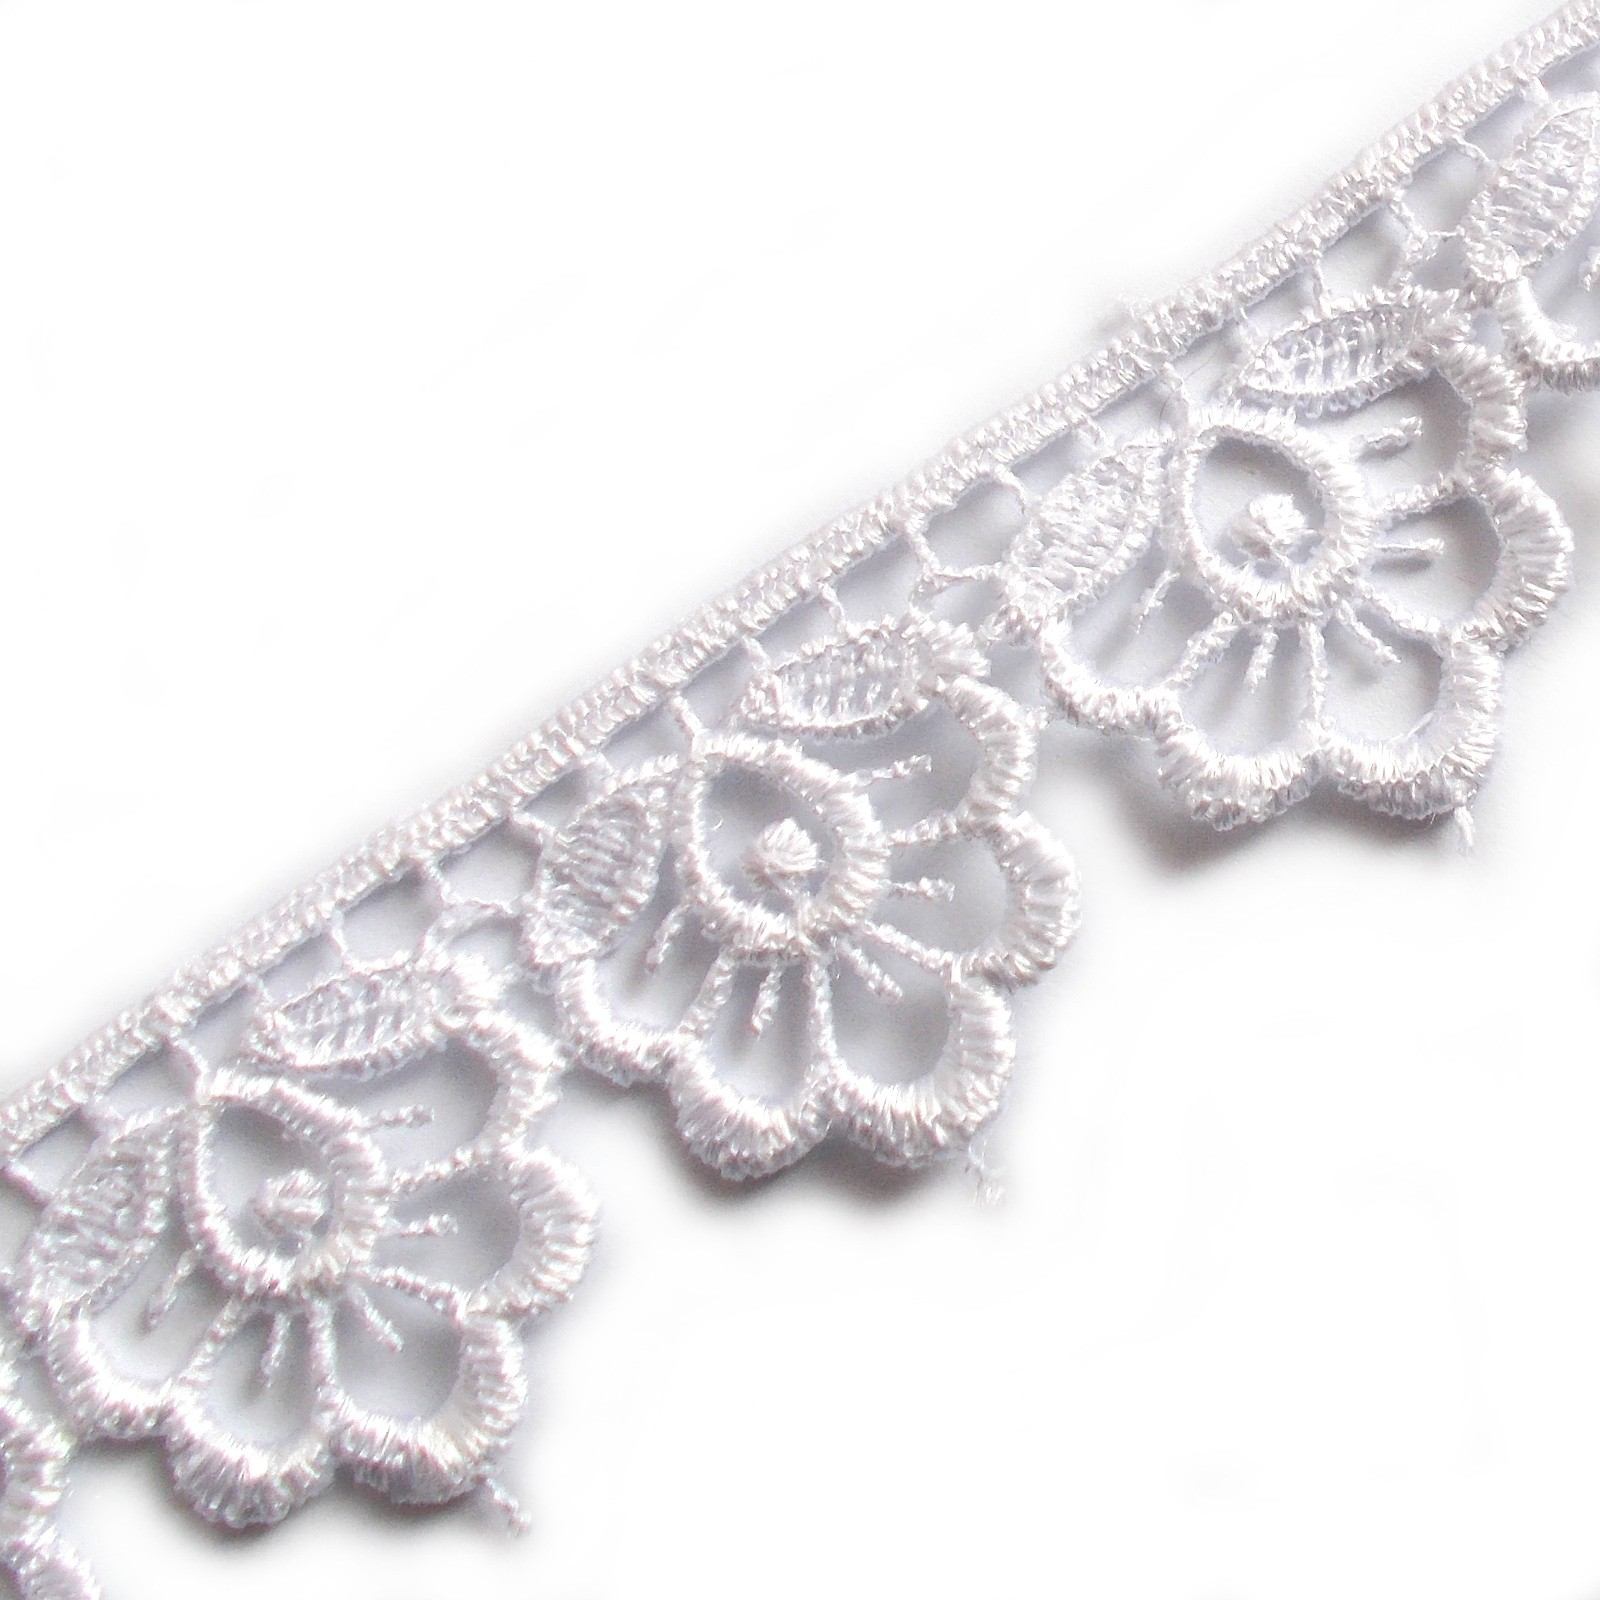 Scalloped Guipure Lace 27mm wide White 3 metre length